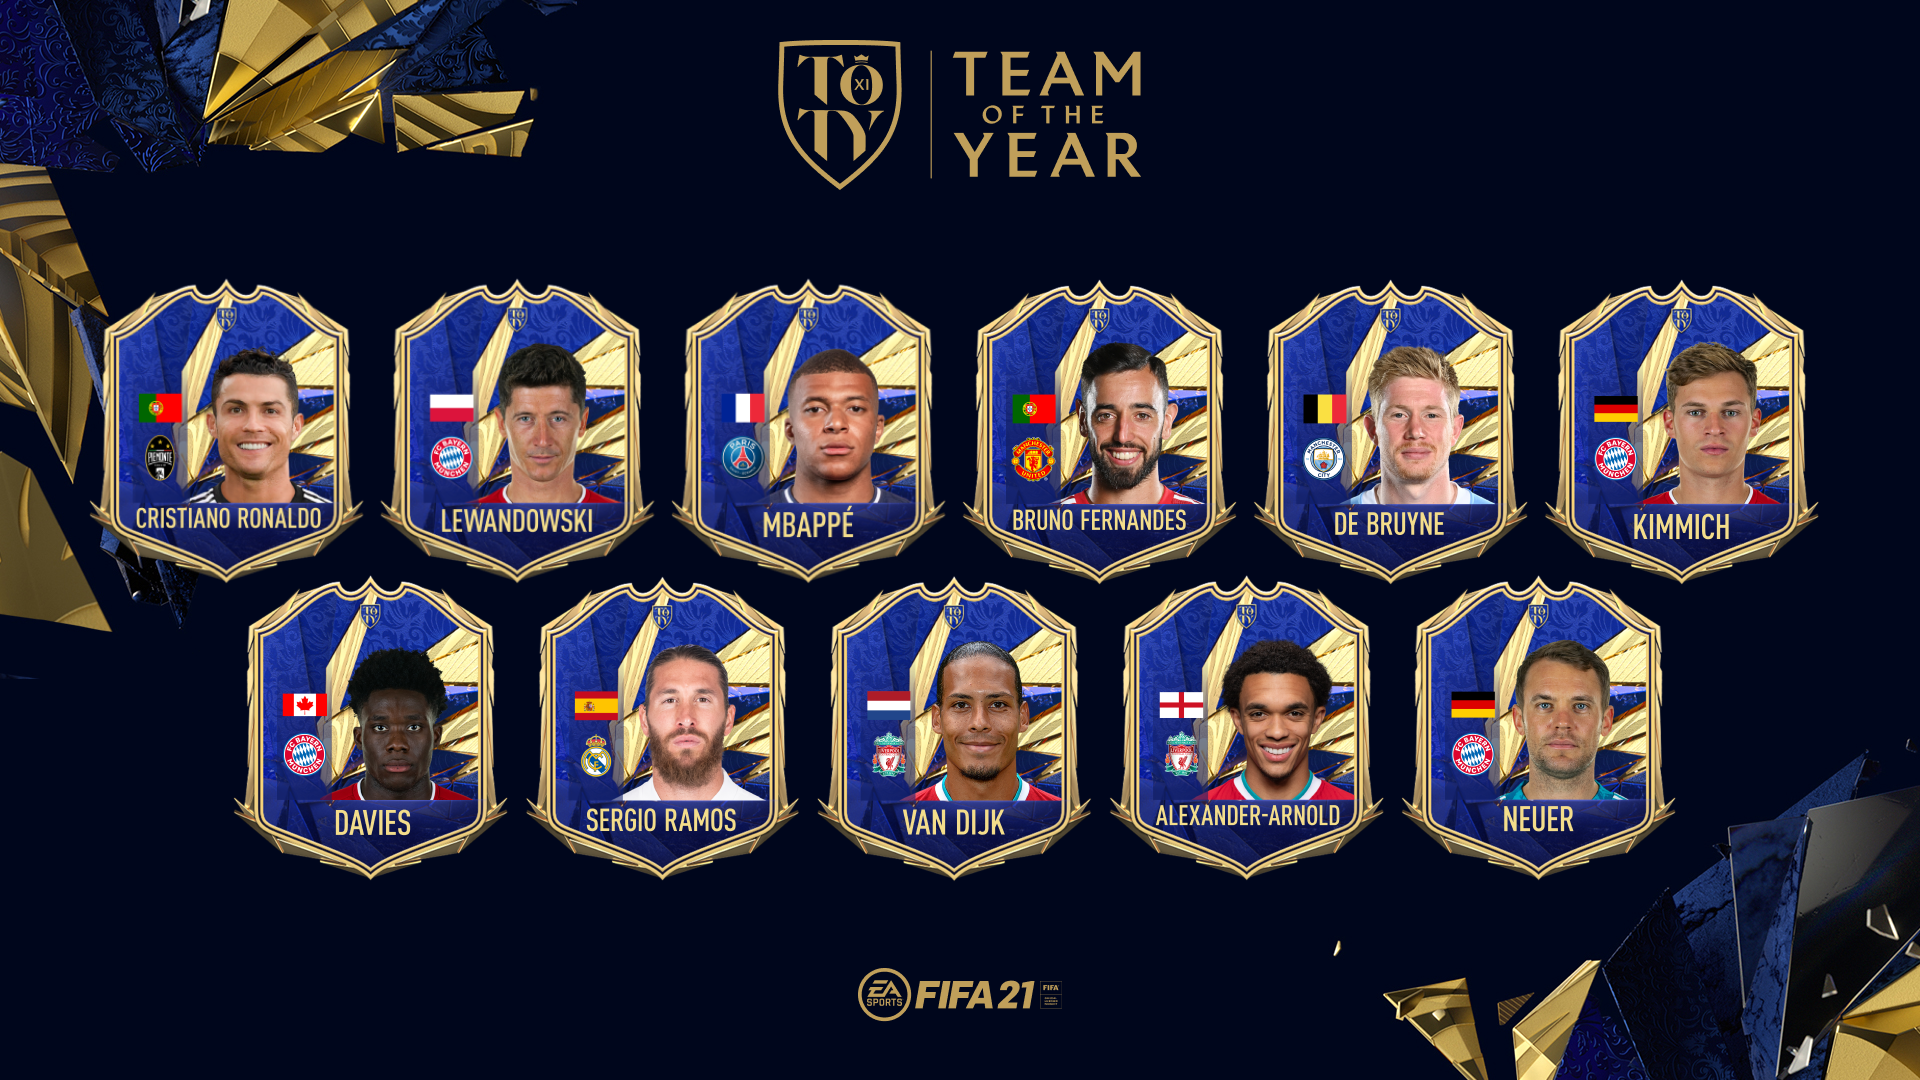 FIFA 21 Team of the Year